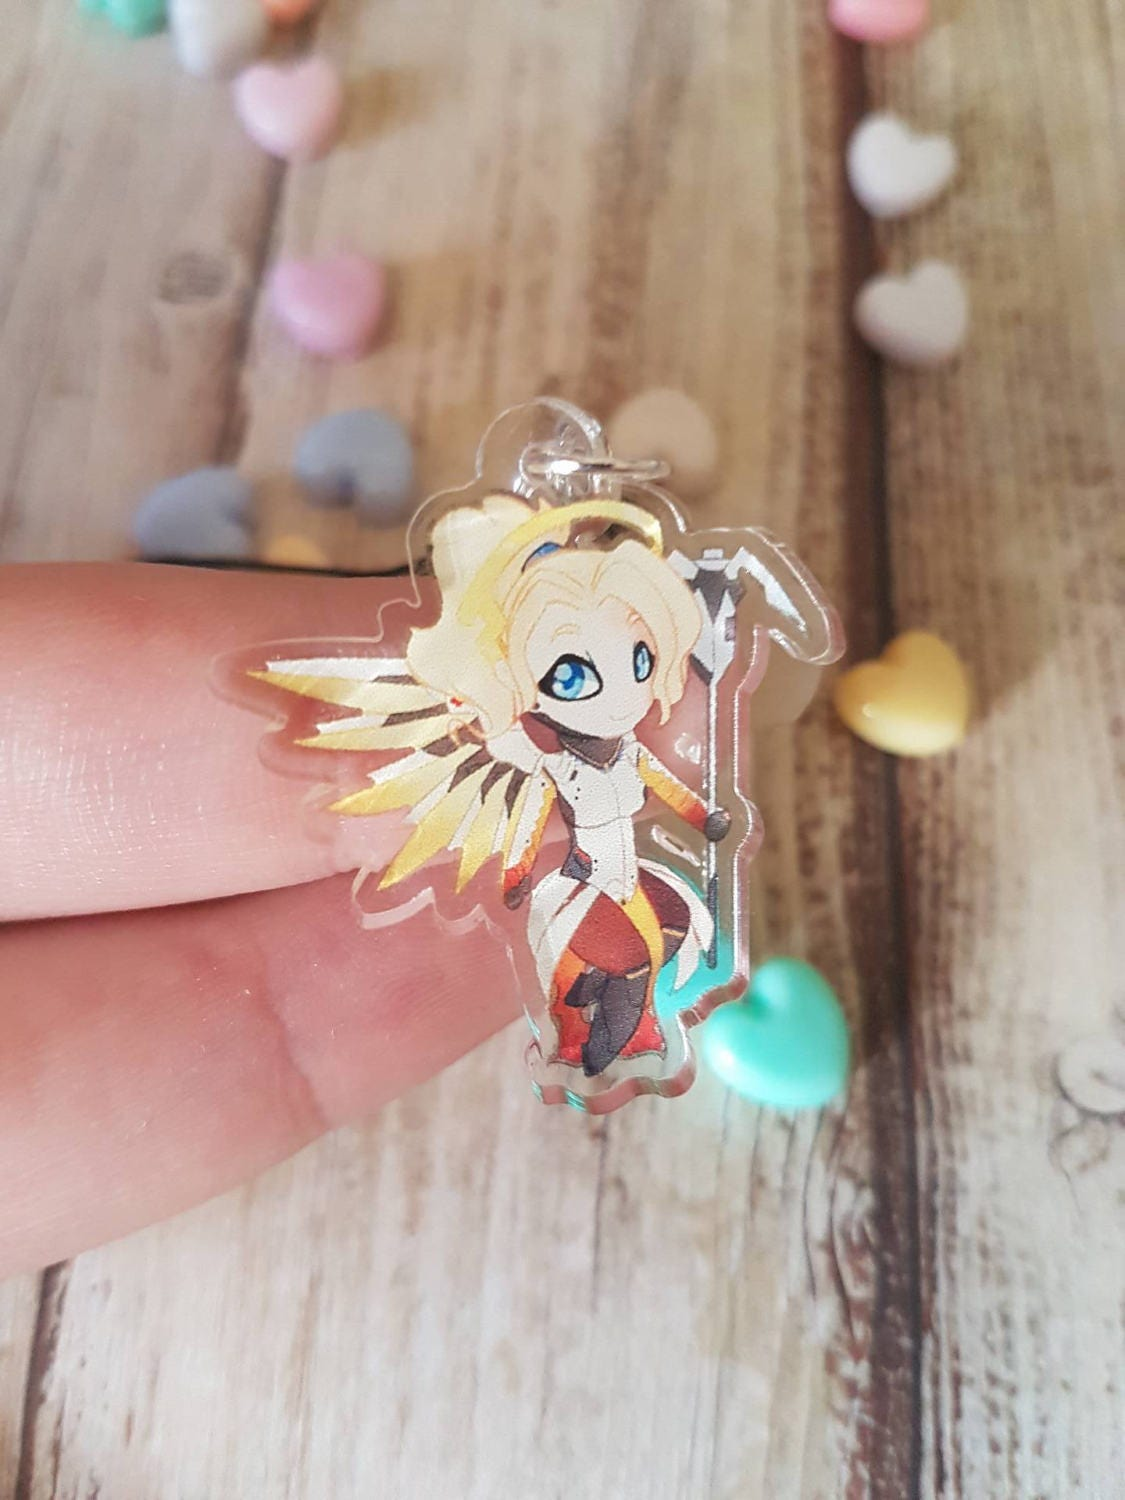 Mercy Overwatch Game Fan Art Clear 1.5  Acrylic Charm with Phone Strap Gift Nerd Geek Video Game